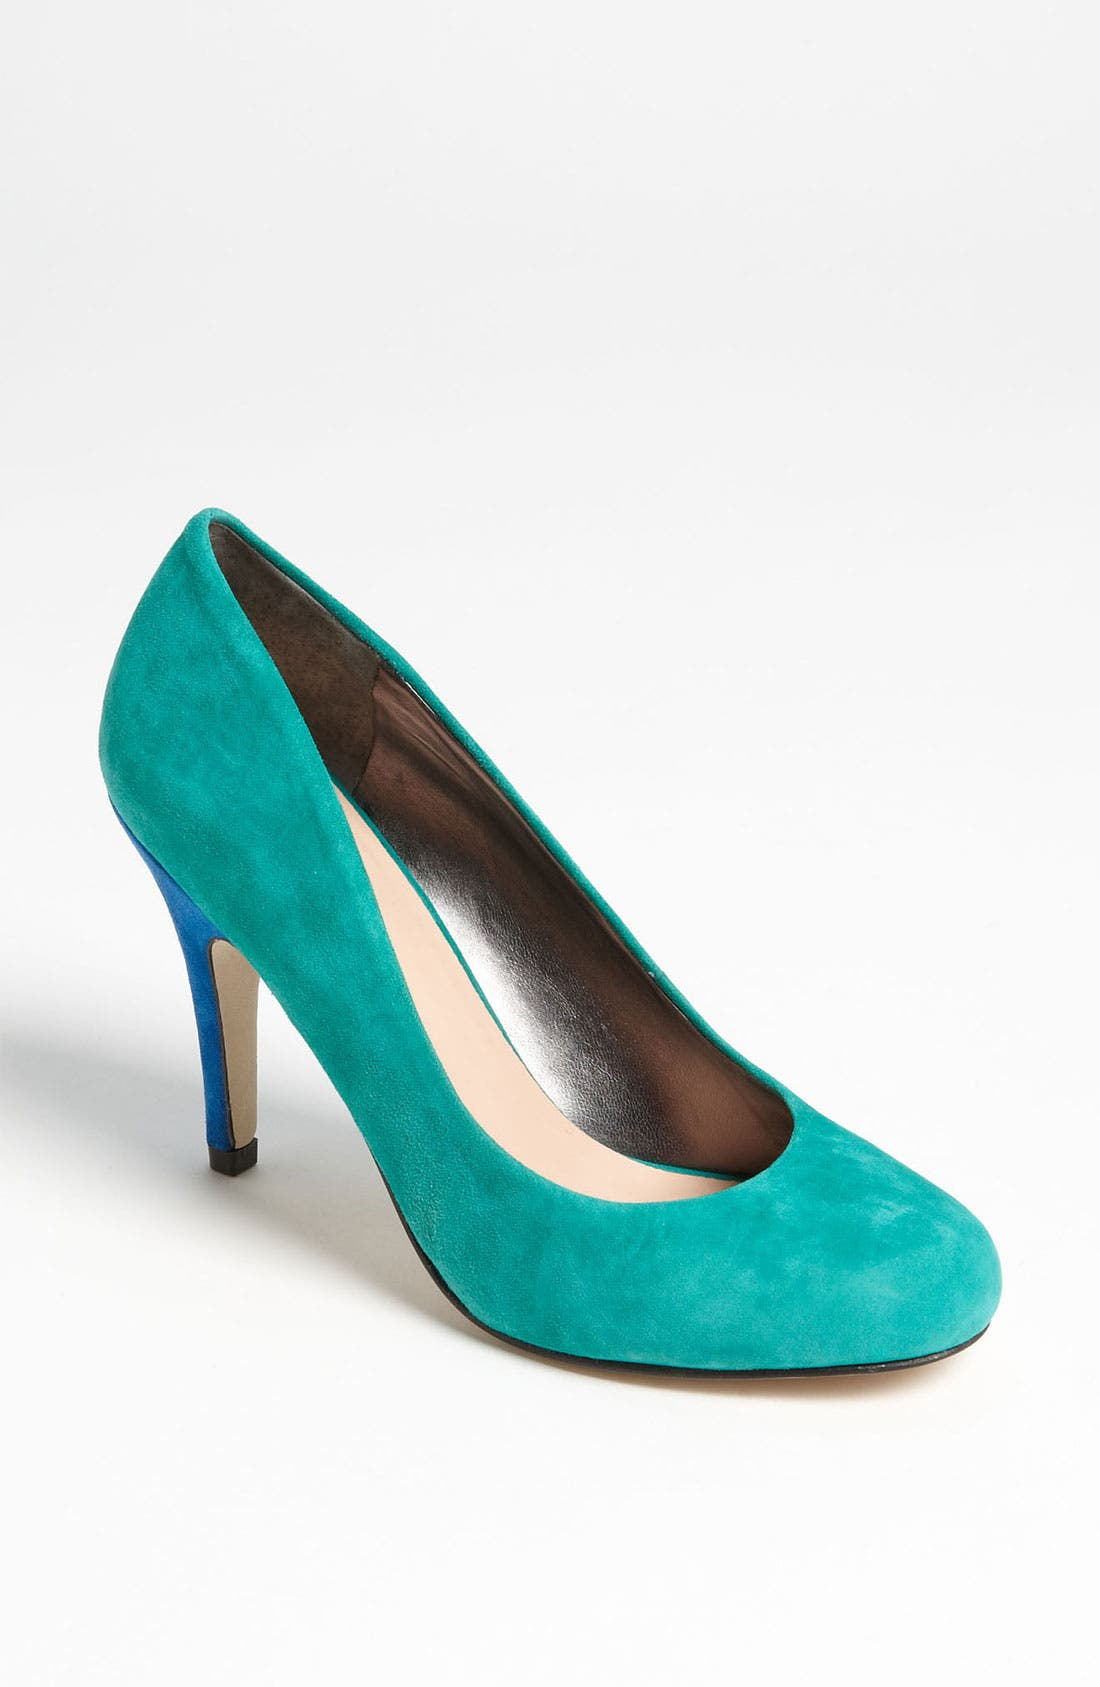 Alternate Image 1 Selected - Sole Society 'Casey' Pump